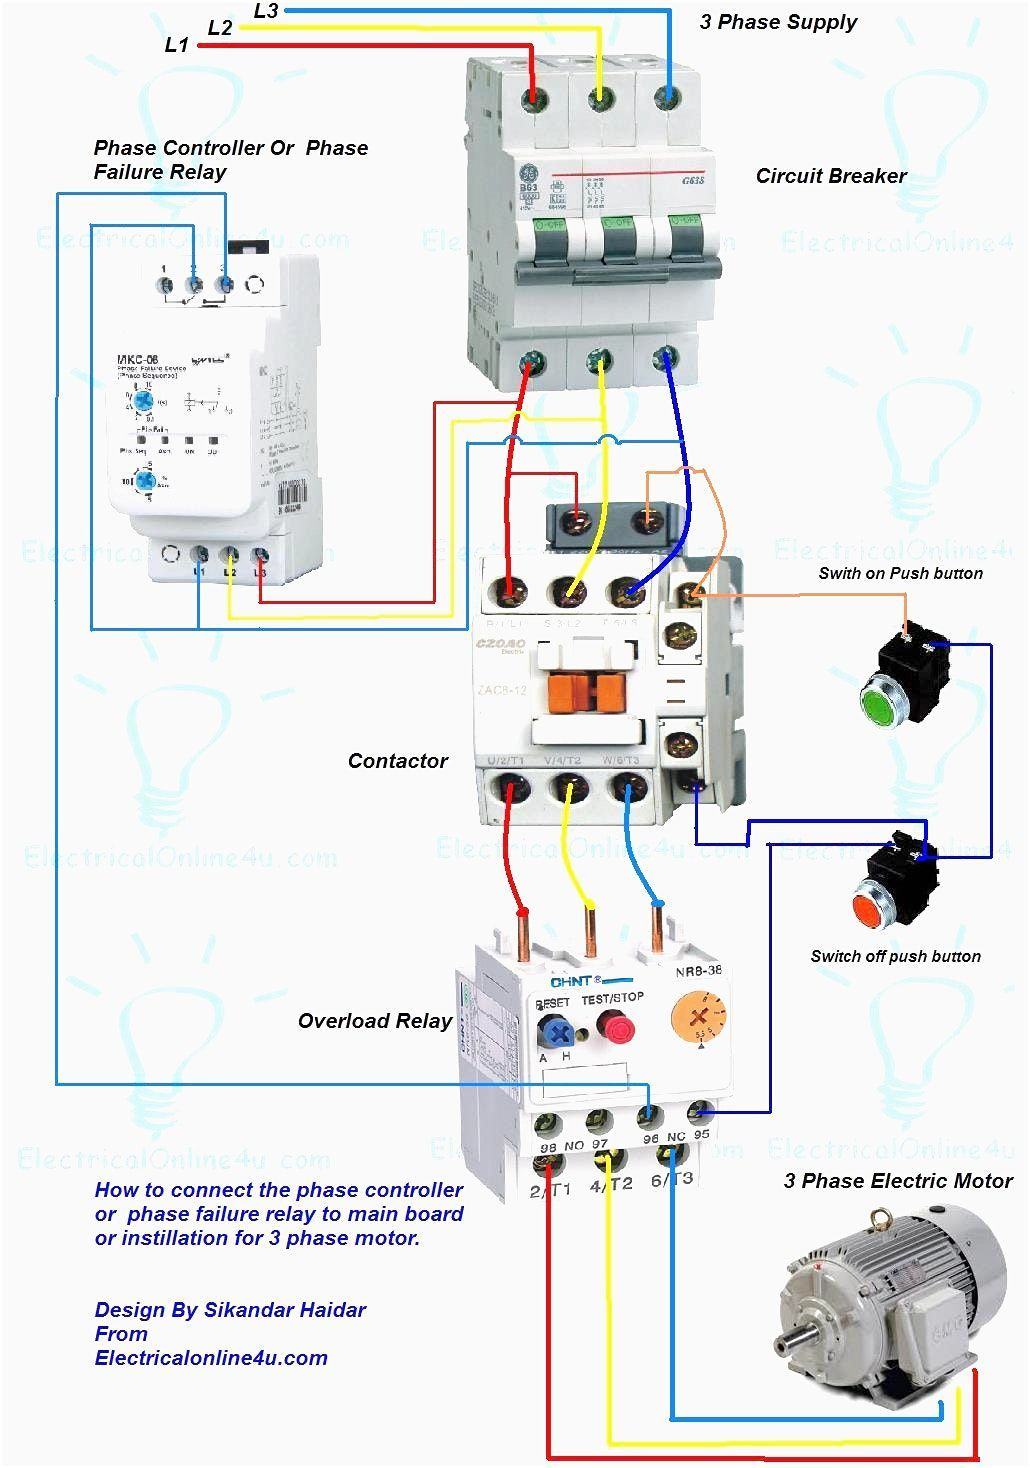 3 Phase Wiring Diagram For House